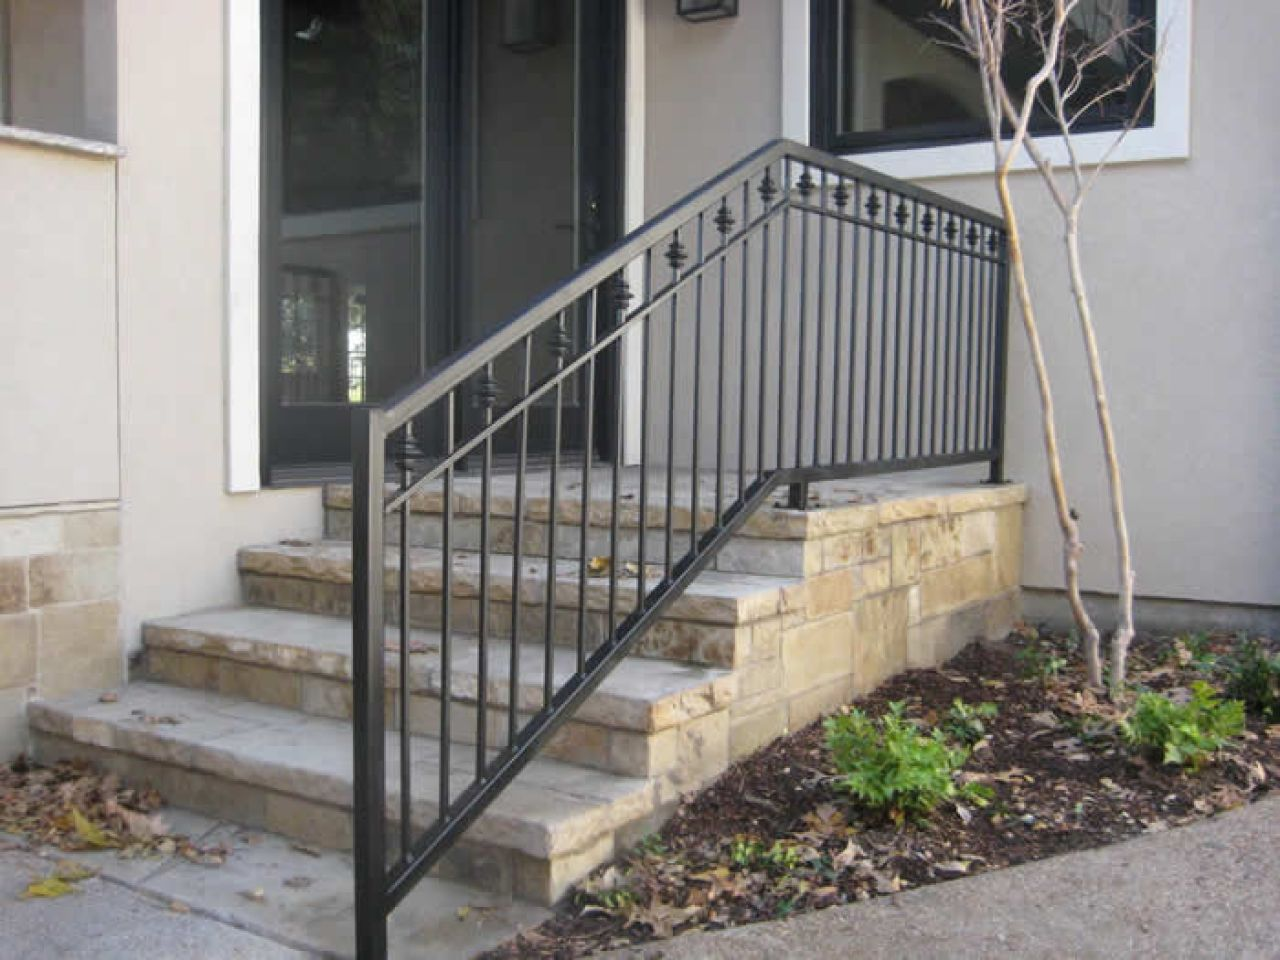 Image Result For How Much Should External Wrought Iron Step Rails | Exterior Wrought Iron Railing Cost | Ironwork | Fence | Stainless Steel | Balcony Railing | Handrails